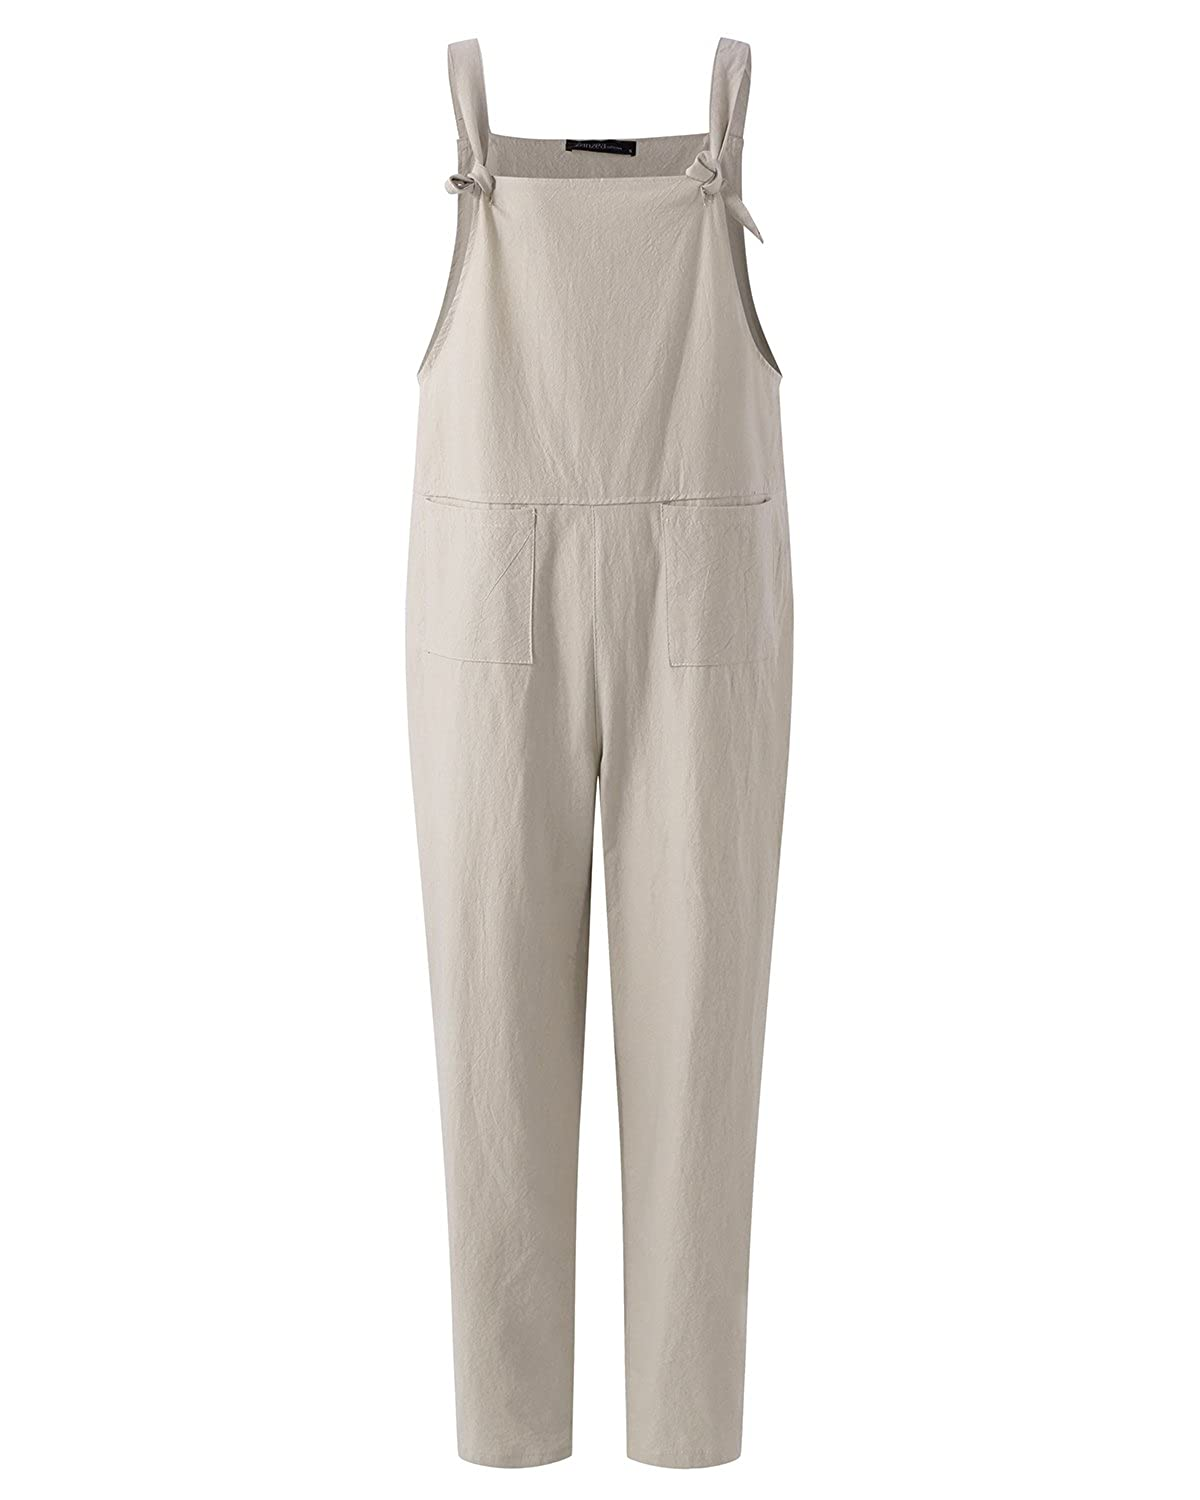 84e1c90b28 ZANZEA Women s Retro Loose Casual Baggy Sleeveless Overall Long Jumpsuit  Playsuit Trousers Pants Dungarees  Amazon.co.uk  Clothing